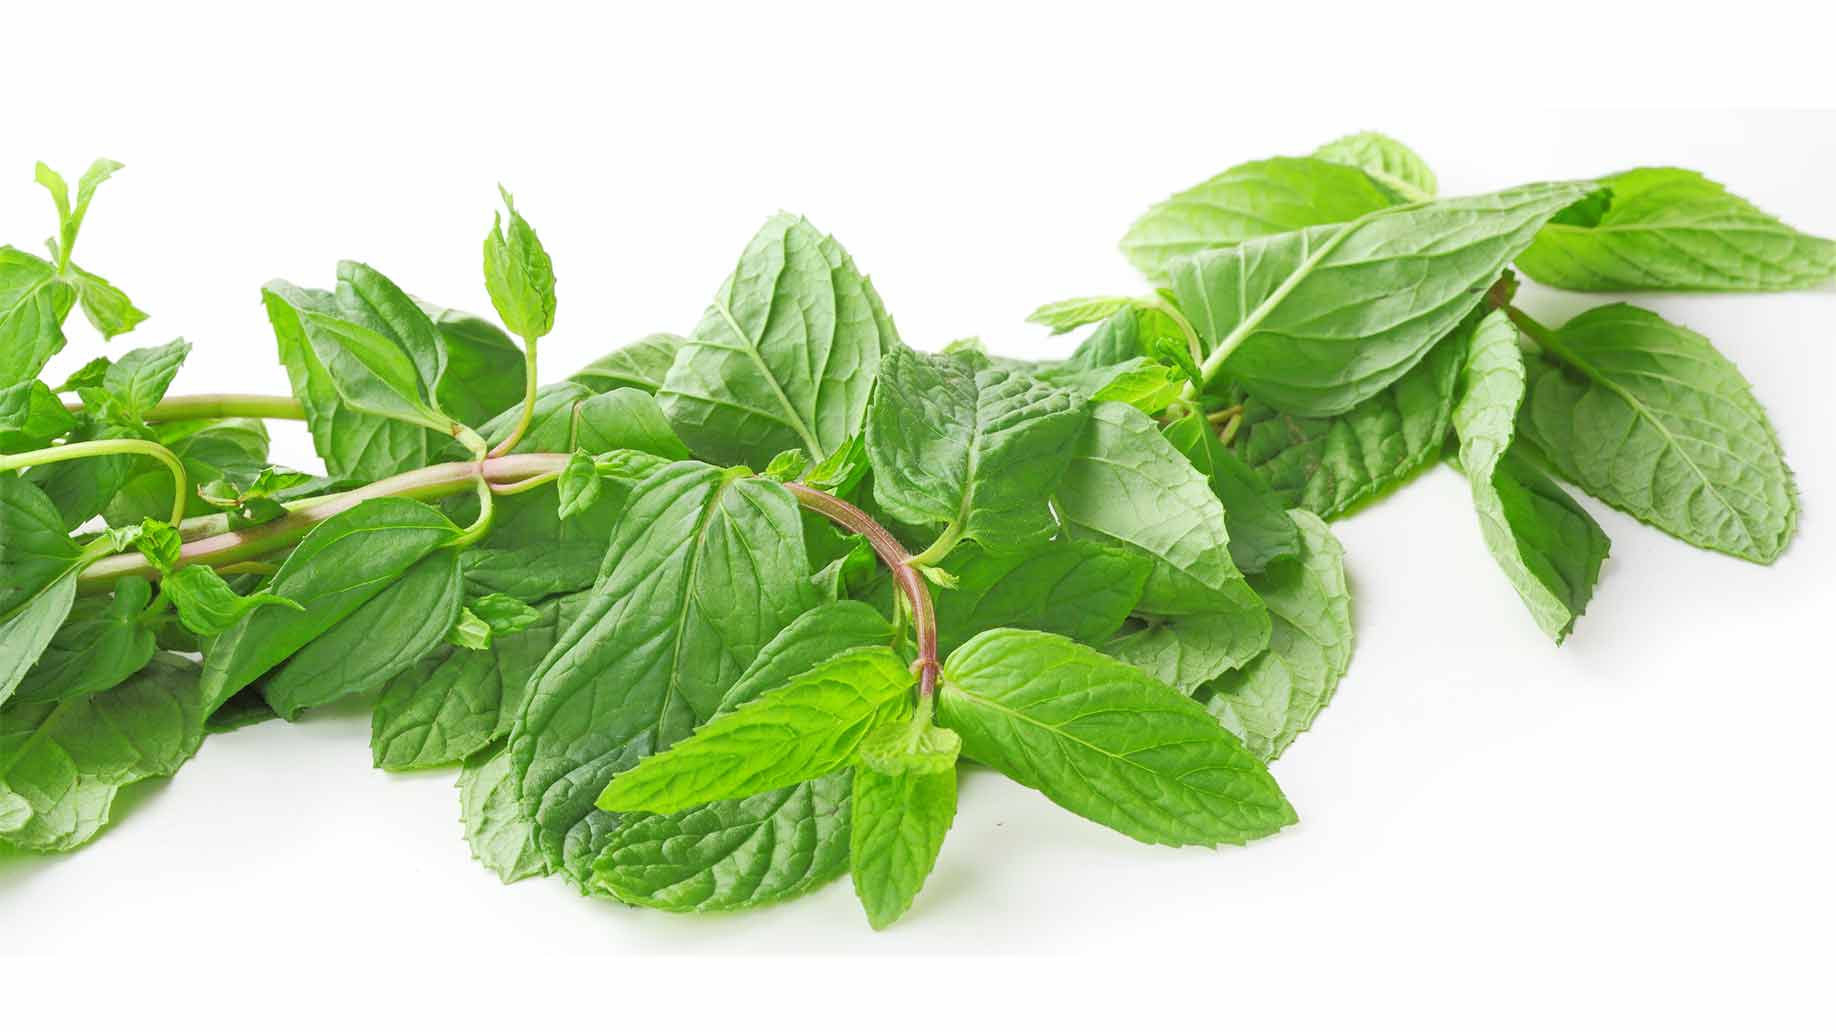 Oregano Herb Fresh Green Leaves